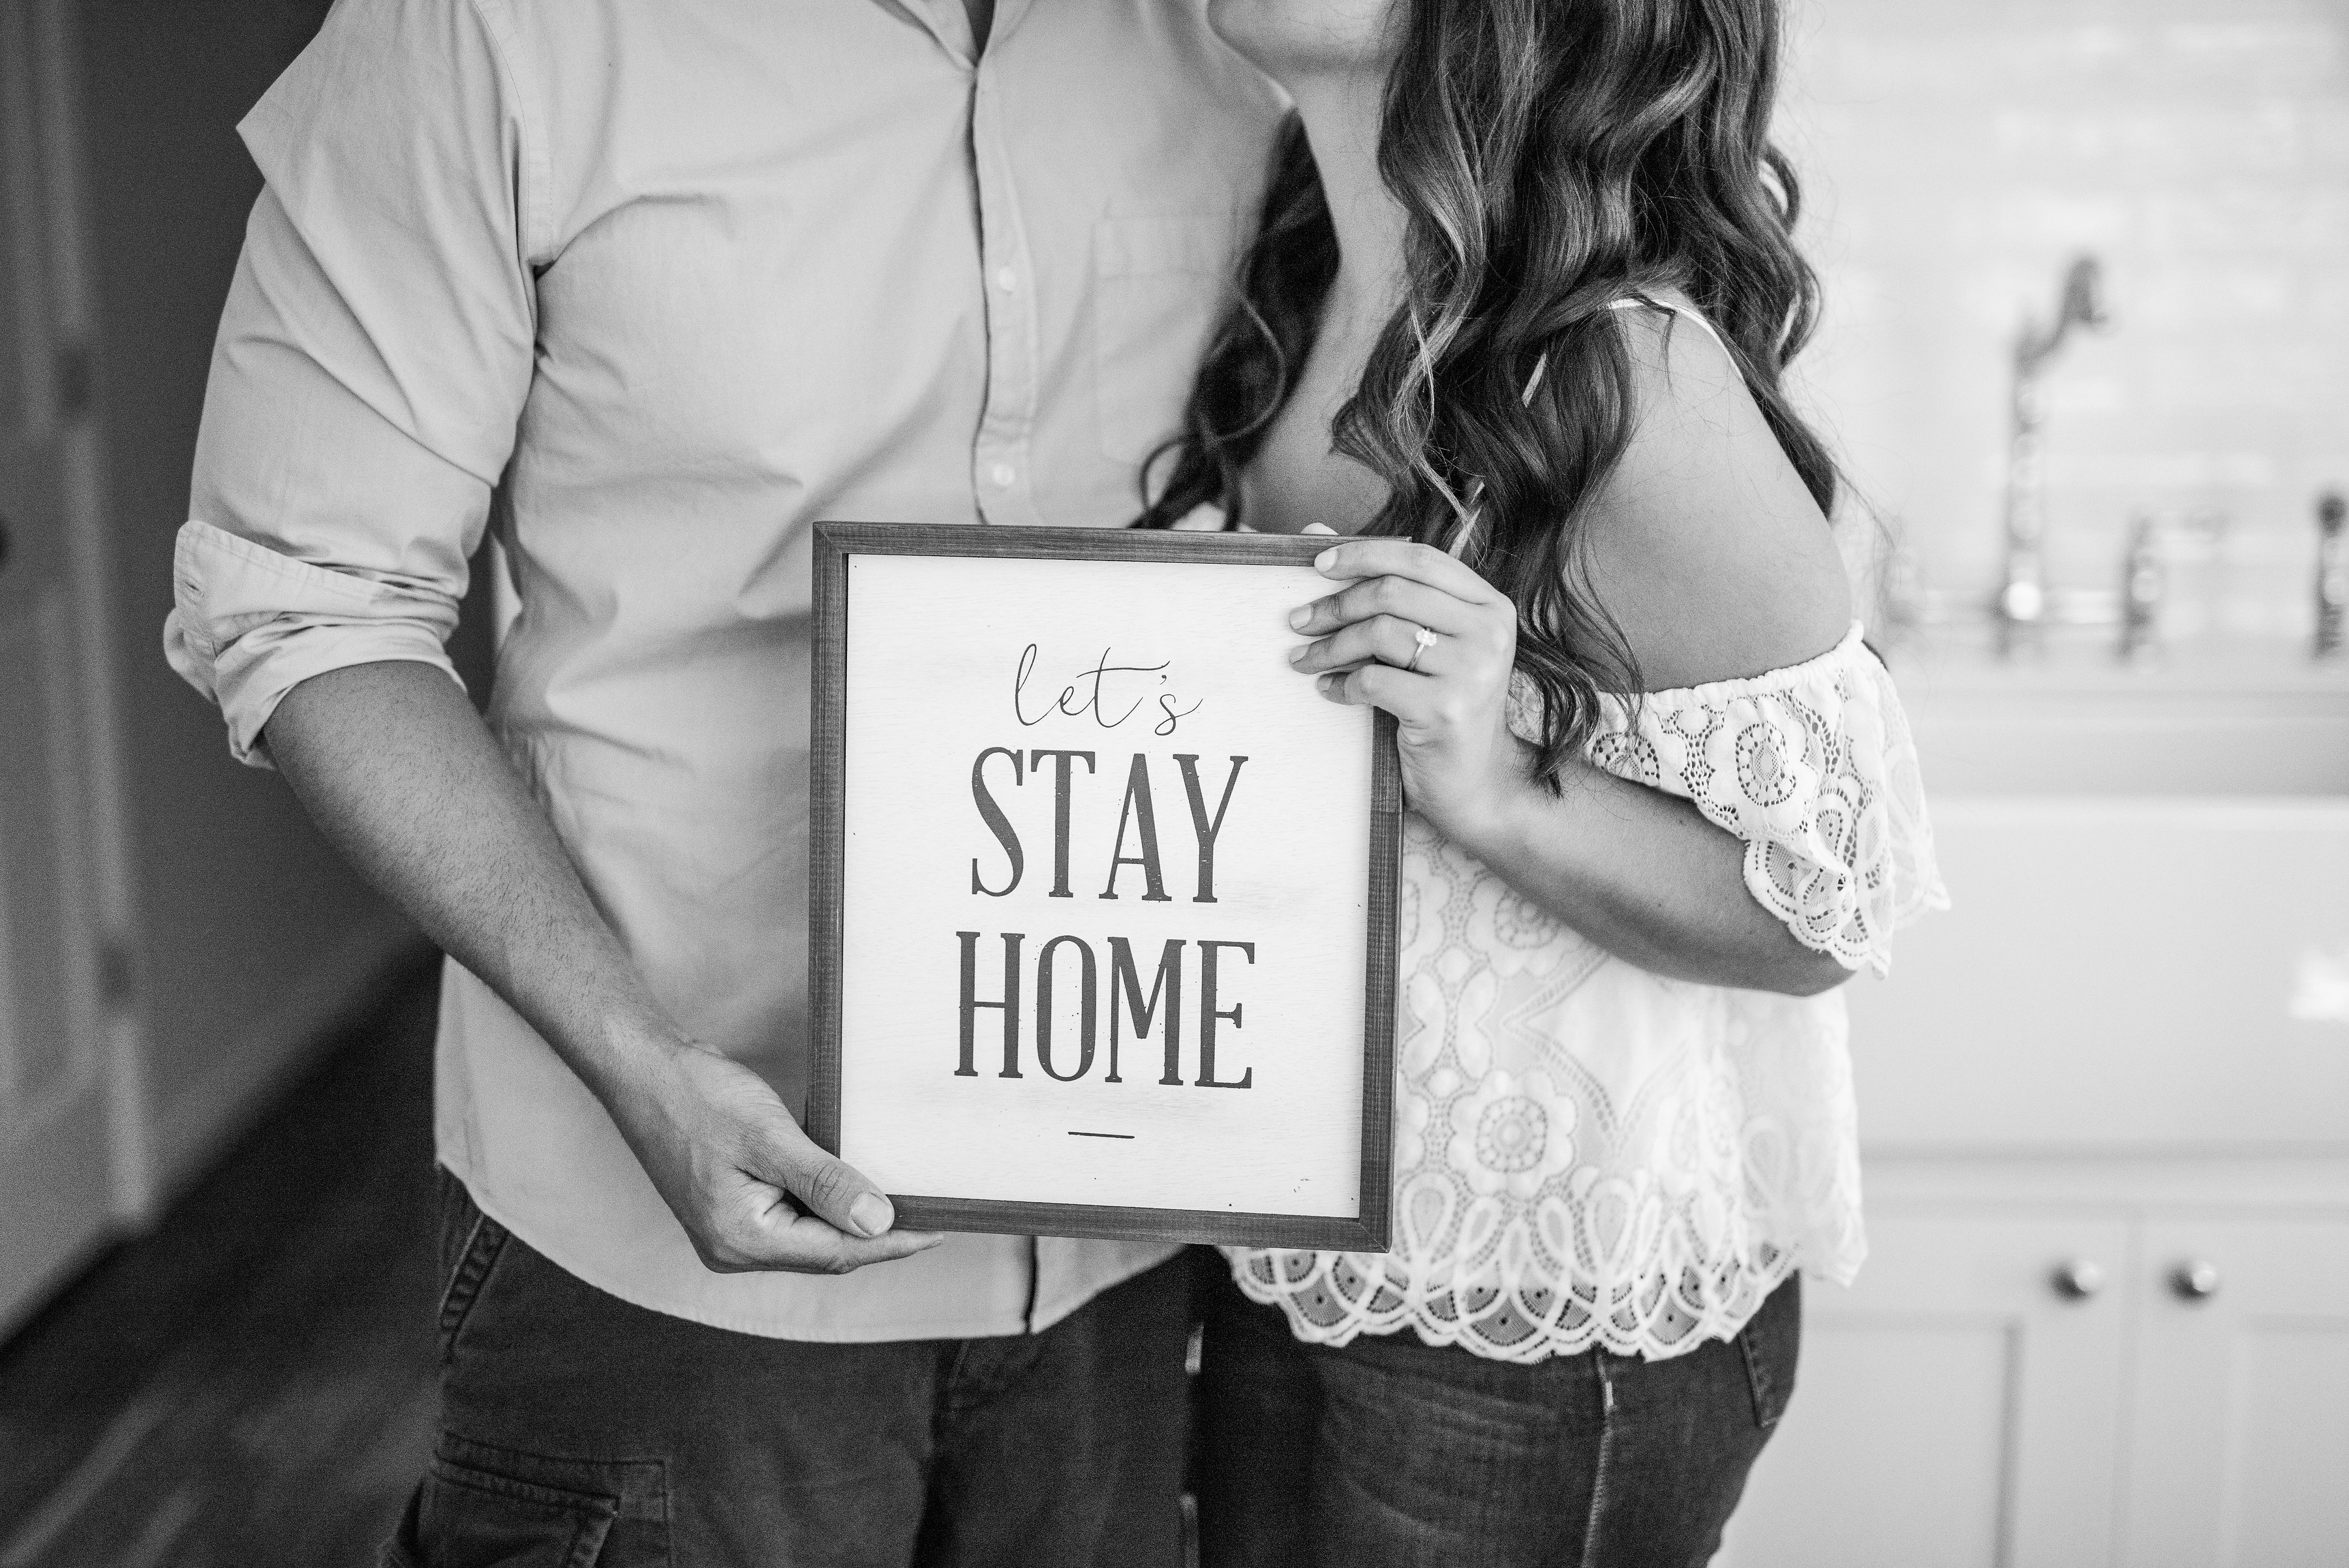 Calverton Engagement Shoot | Engagement Shoot at Home | Rustic Farrm Kitchen Engagement Shoot | North Forrk Wedding Photographer11